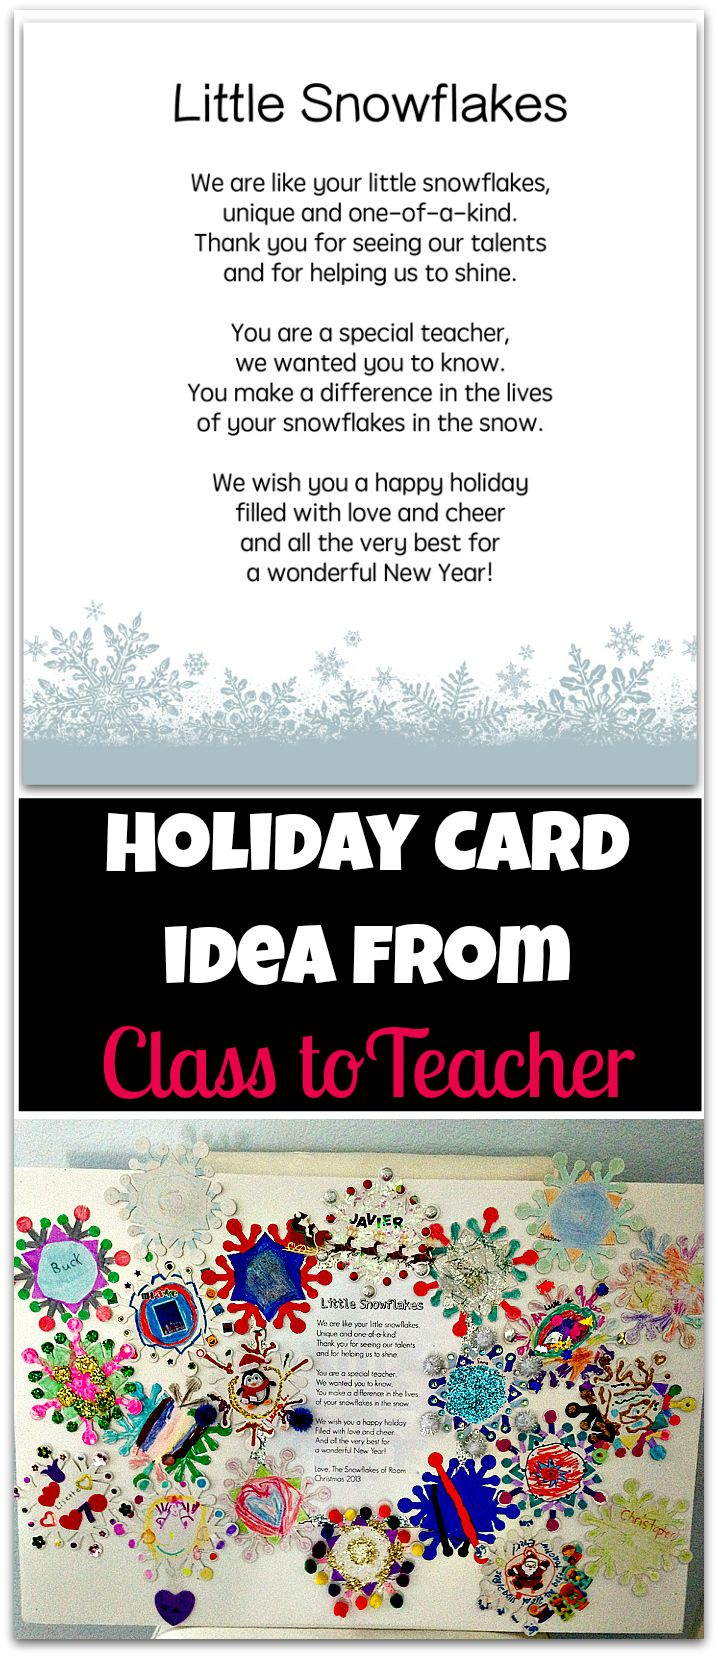 Holiday card idea from class to teacher